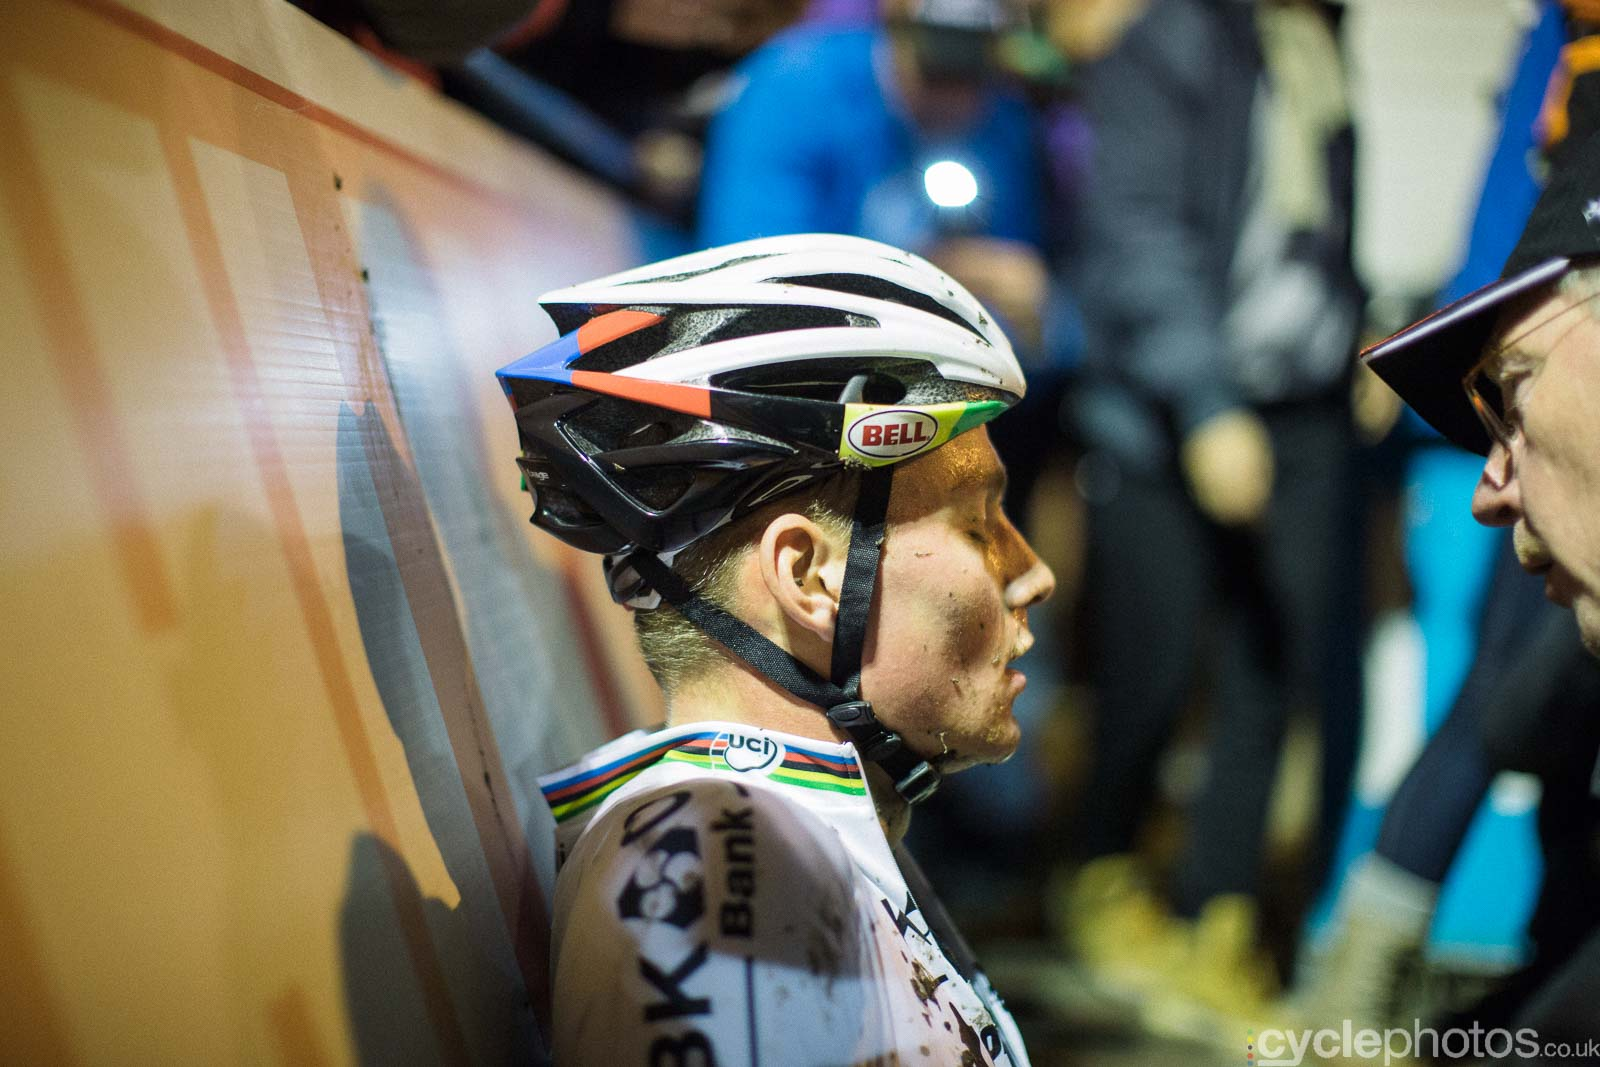 2015-cyclephotos-cyclocross-diegem-183100-mathieu-van-der-poel